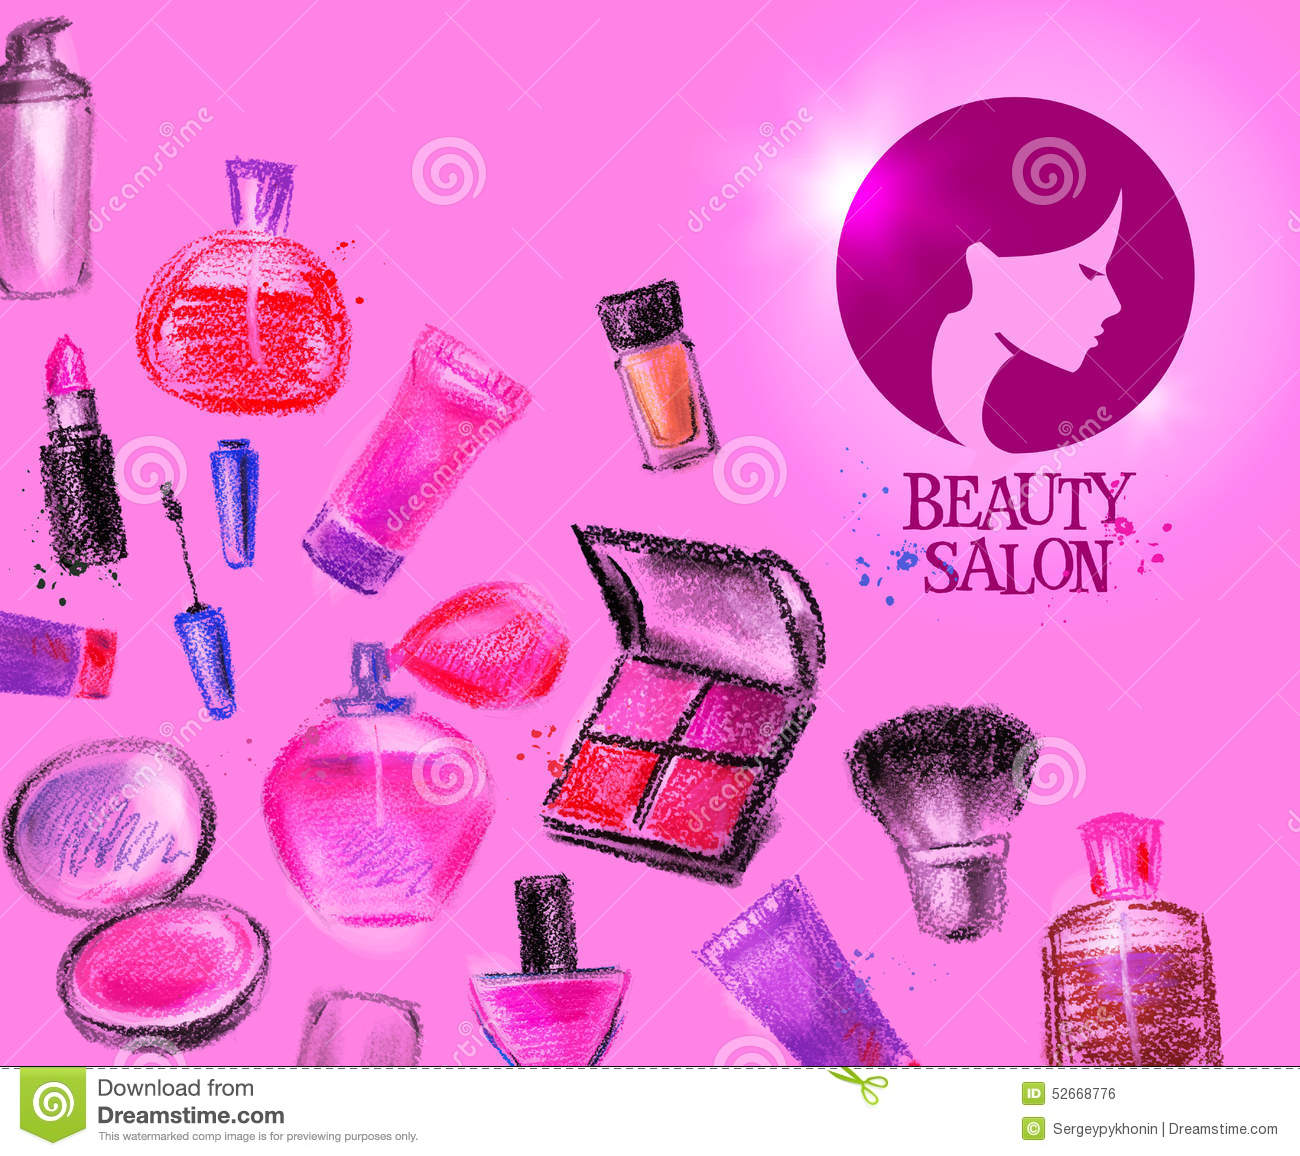 Glam BEAUTY SALON  The Home of Beauty in Swords